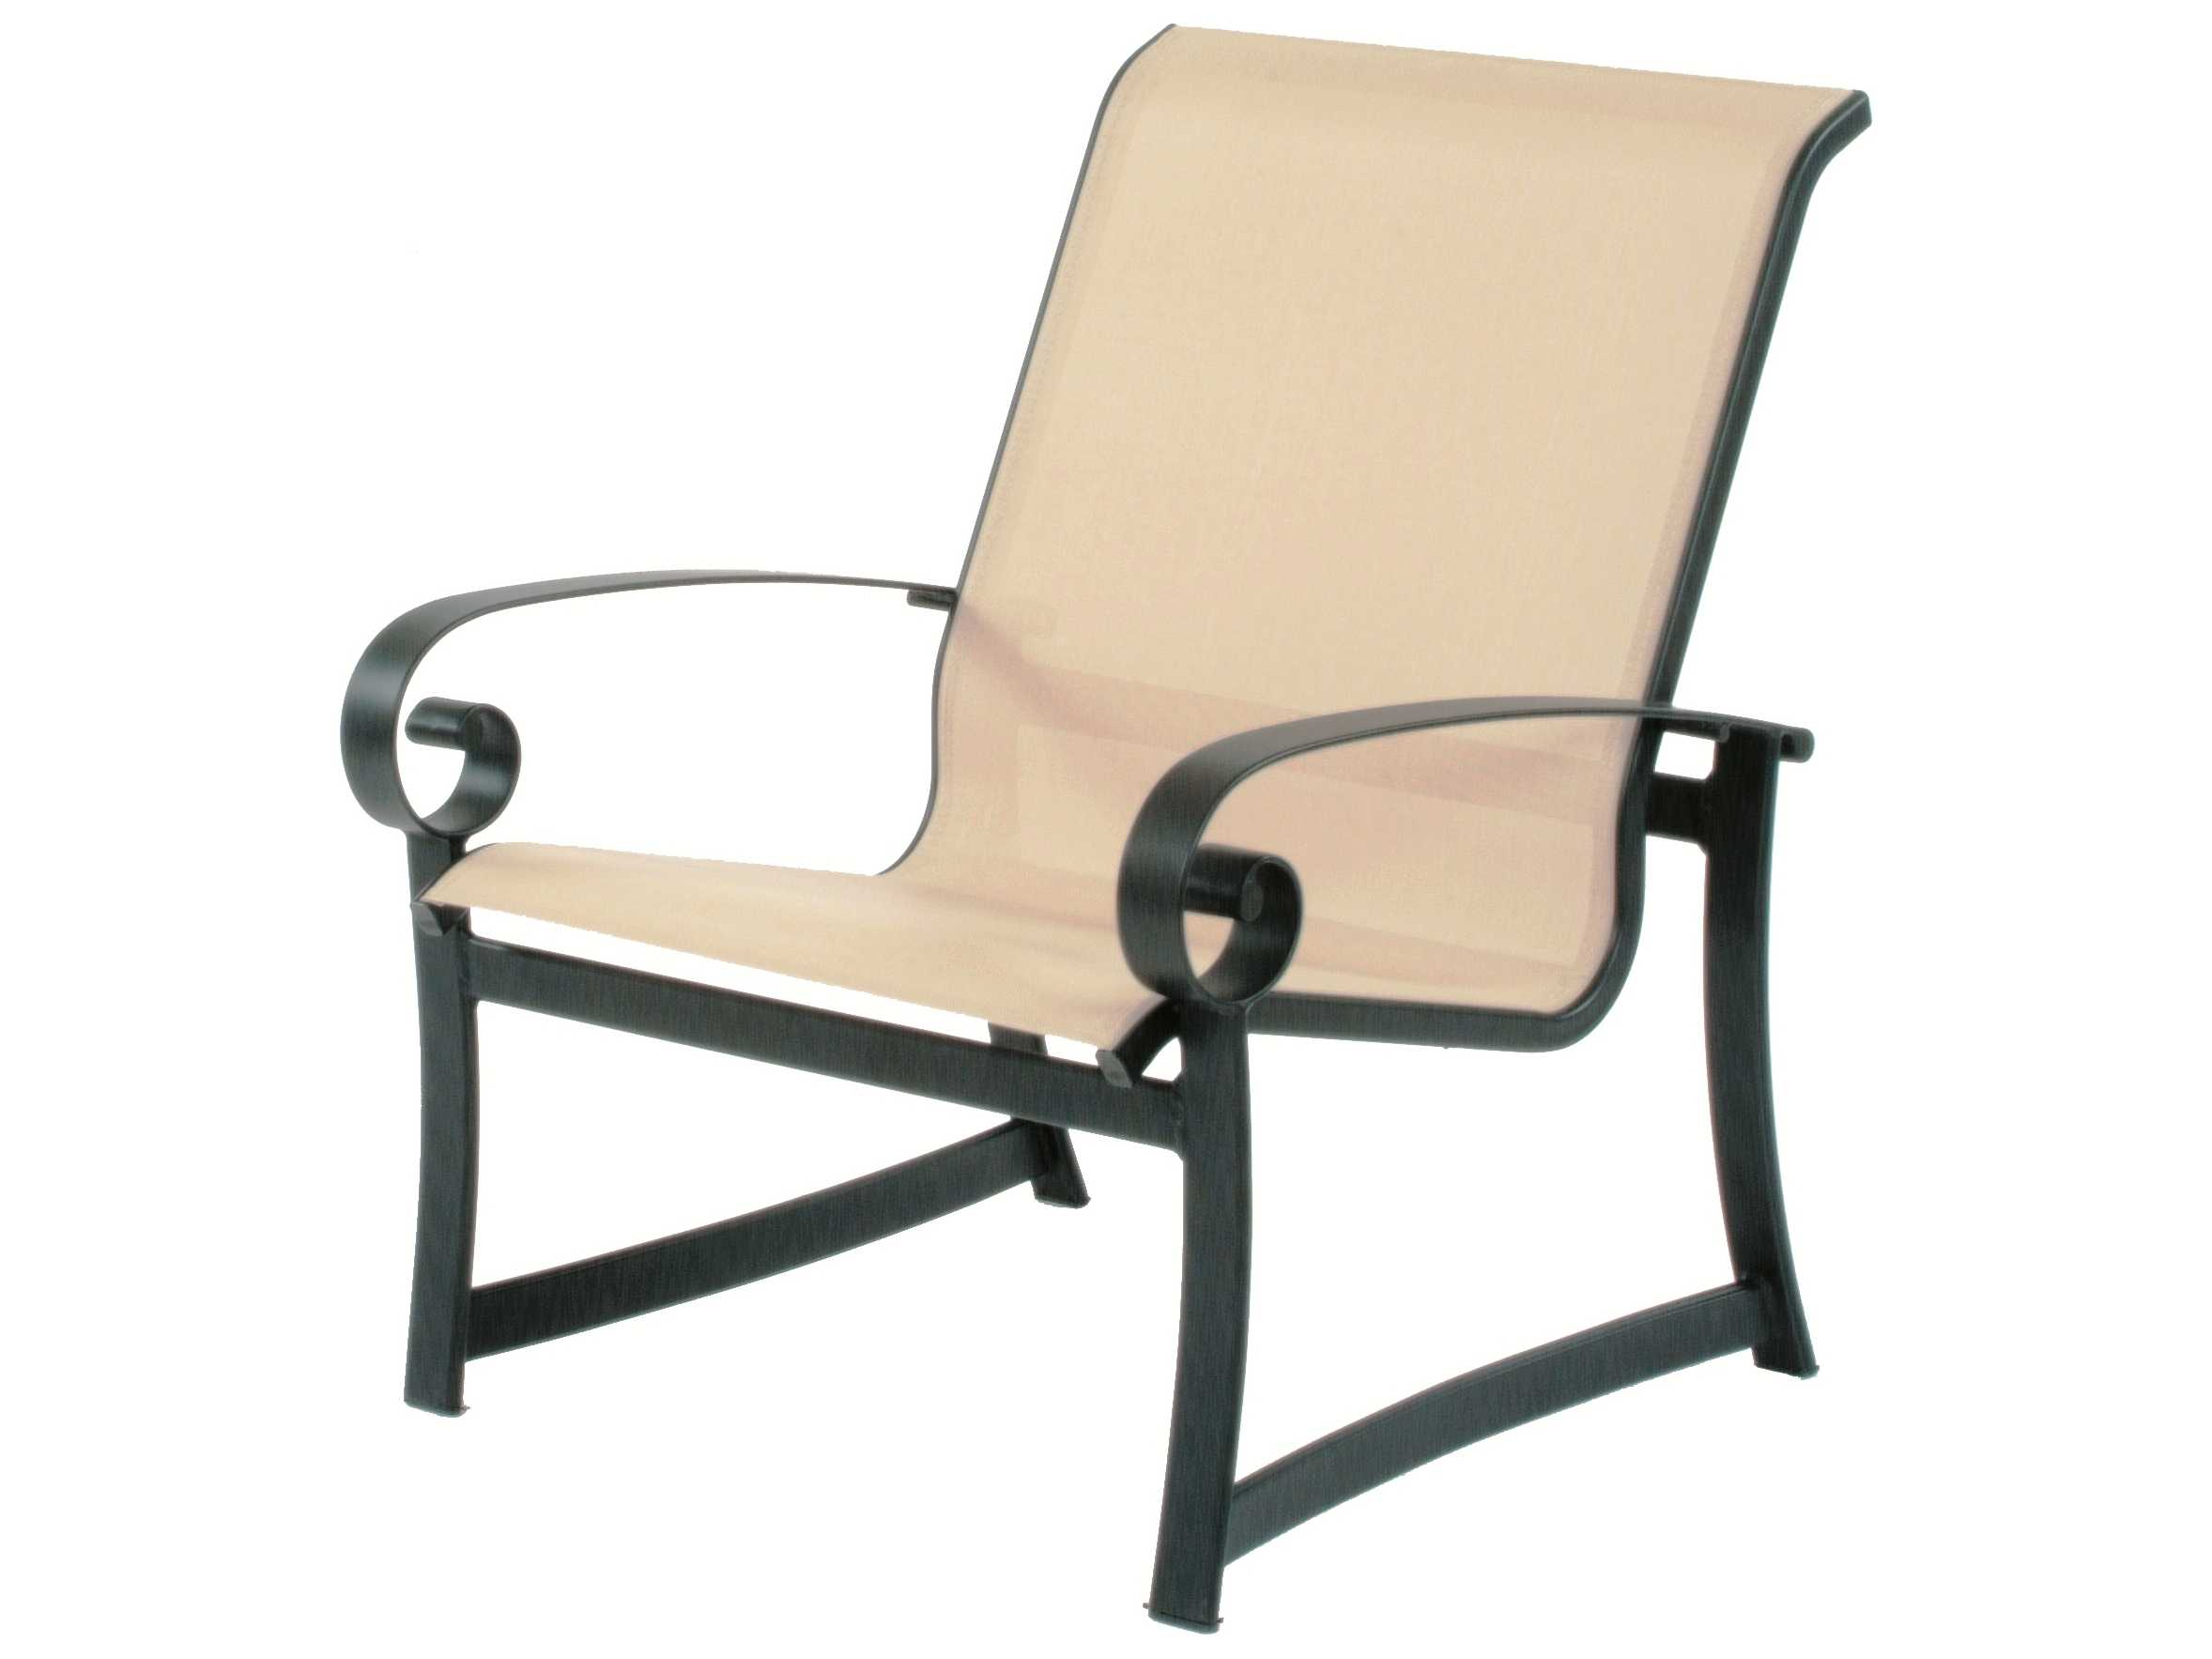 Suncoast Orleans Sling Cast Aluminum Arm Lounge Chair